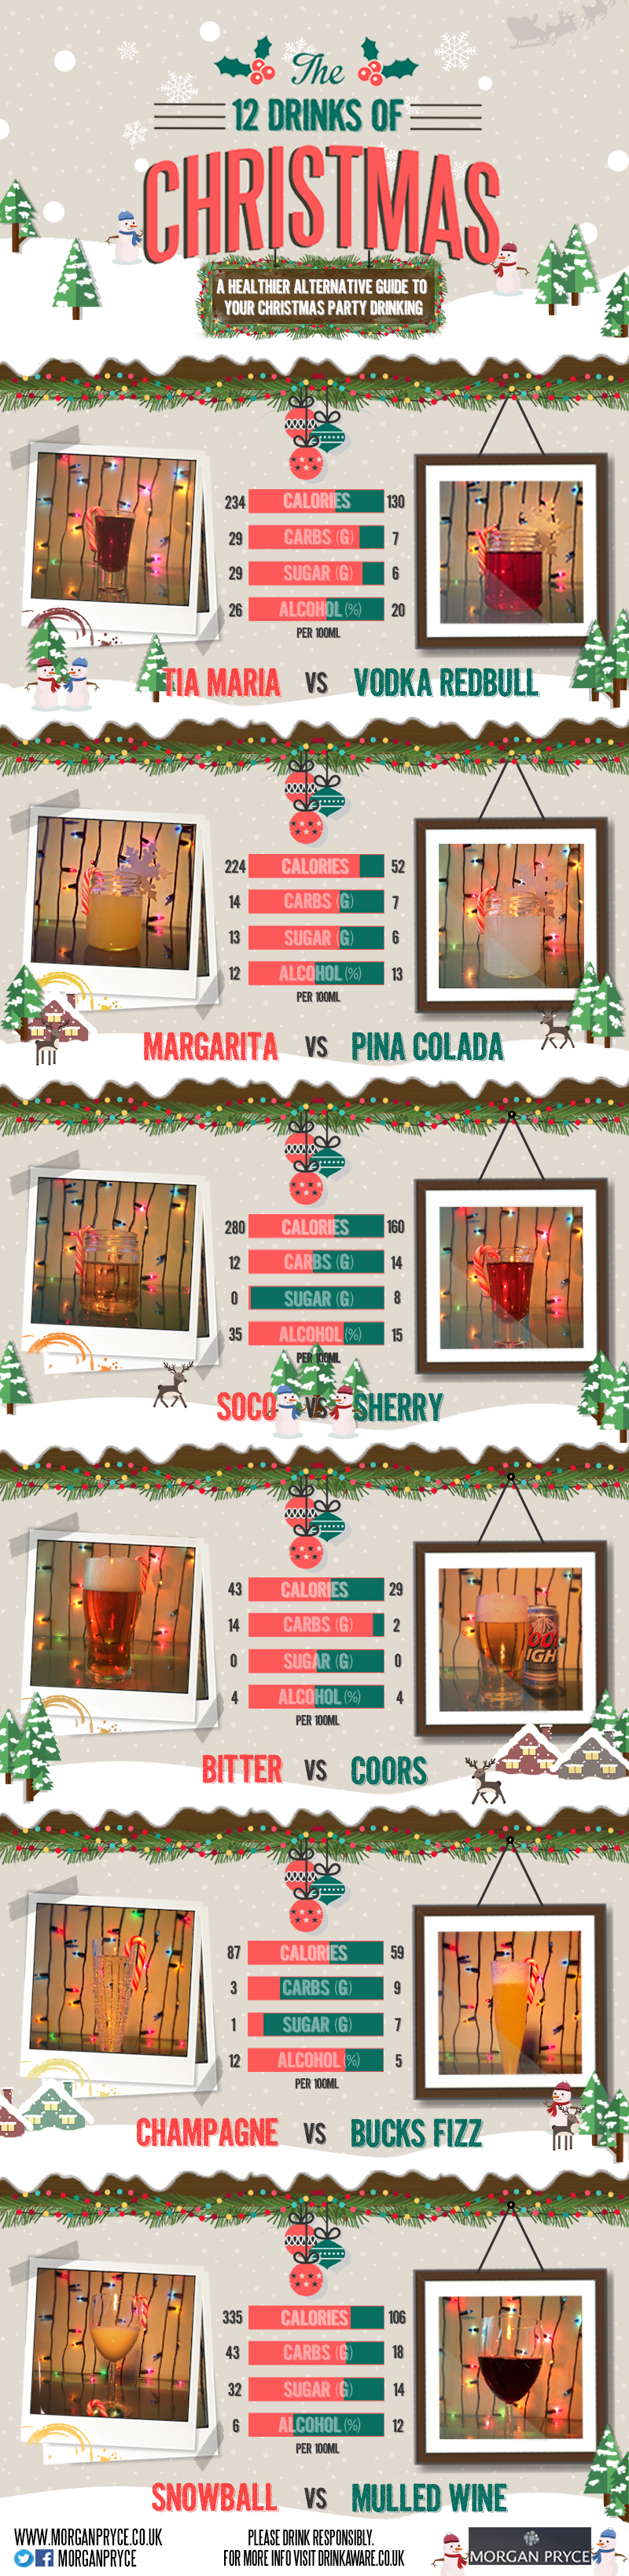 12 Drinks of Christmas infographic Morgan Pryce